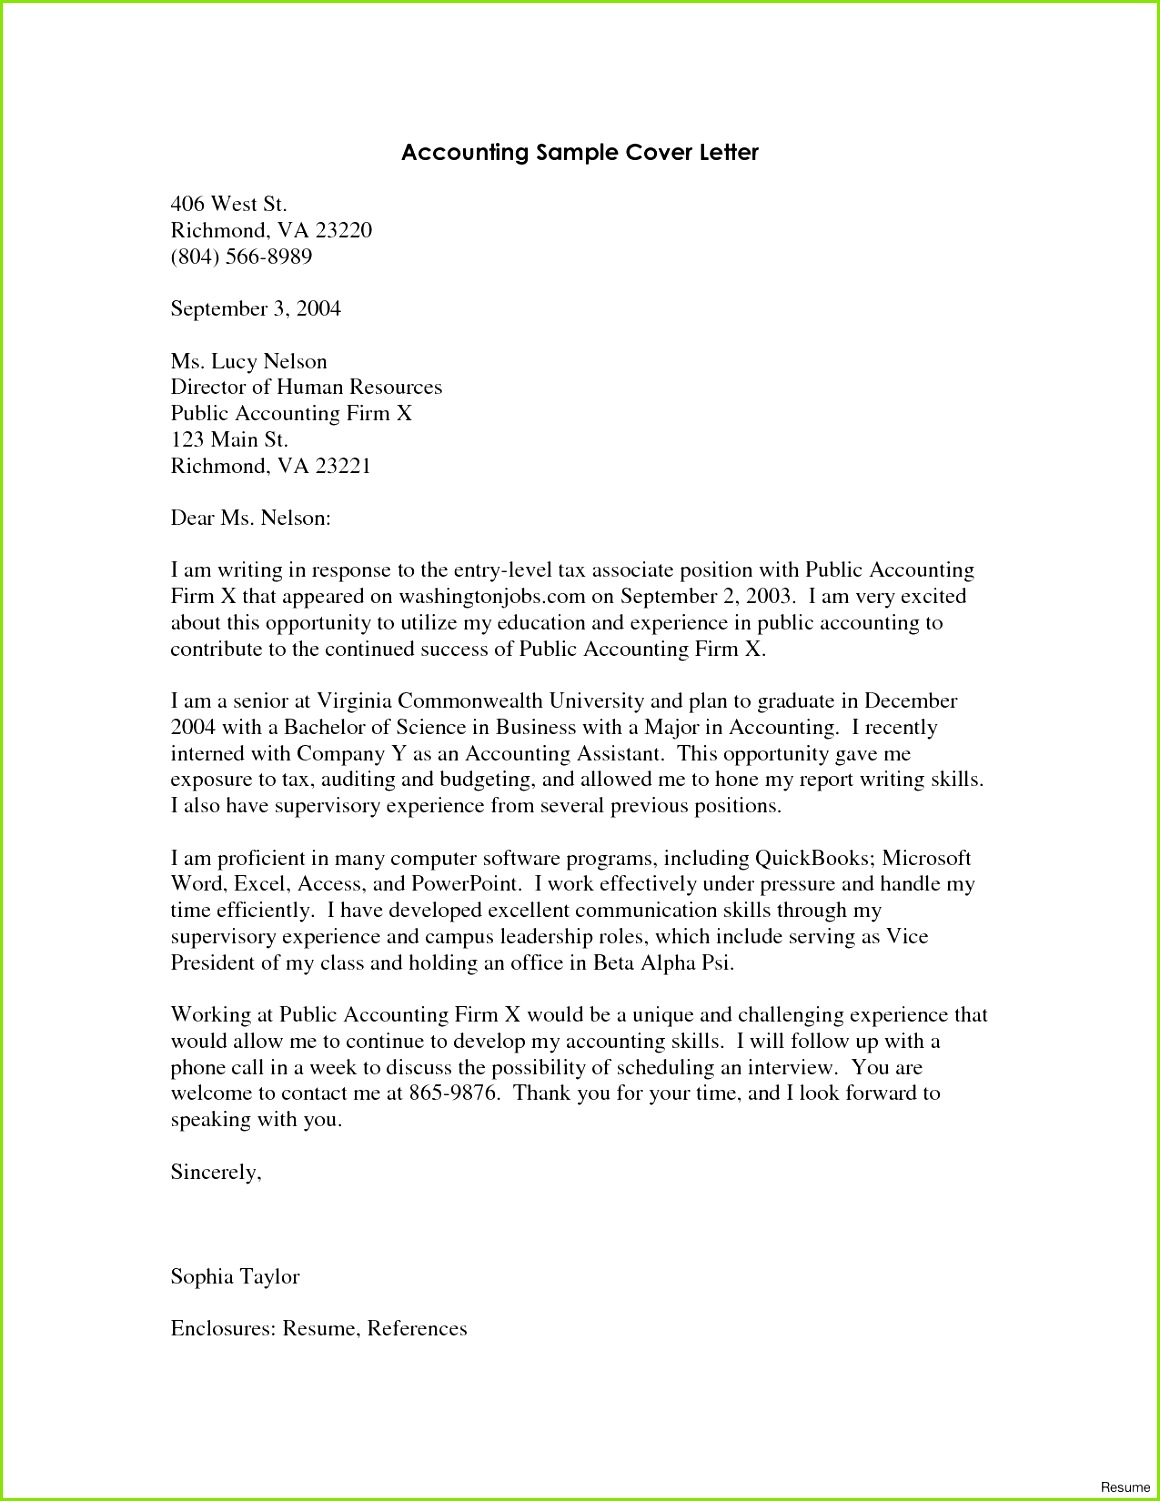 resignation letter template word free free resignation letter template word best sample cover letter resume new receptionist resume sample new od 20o